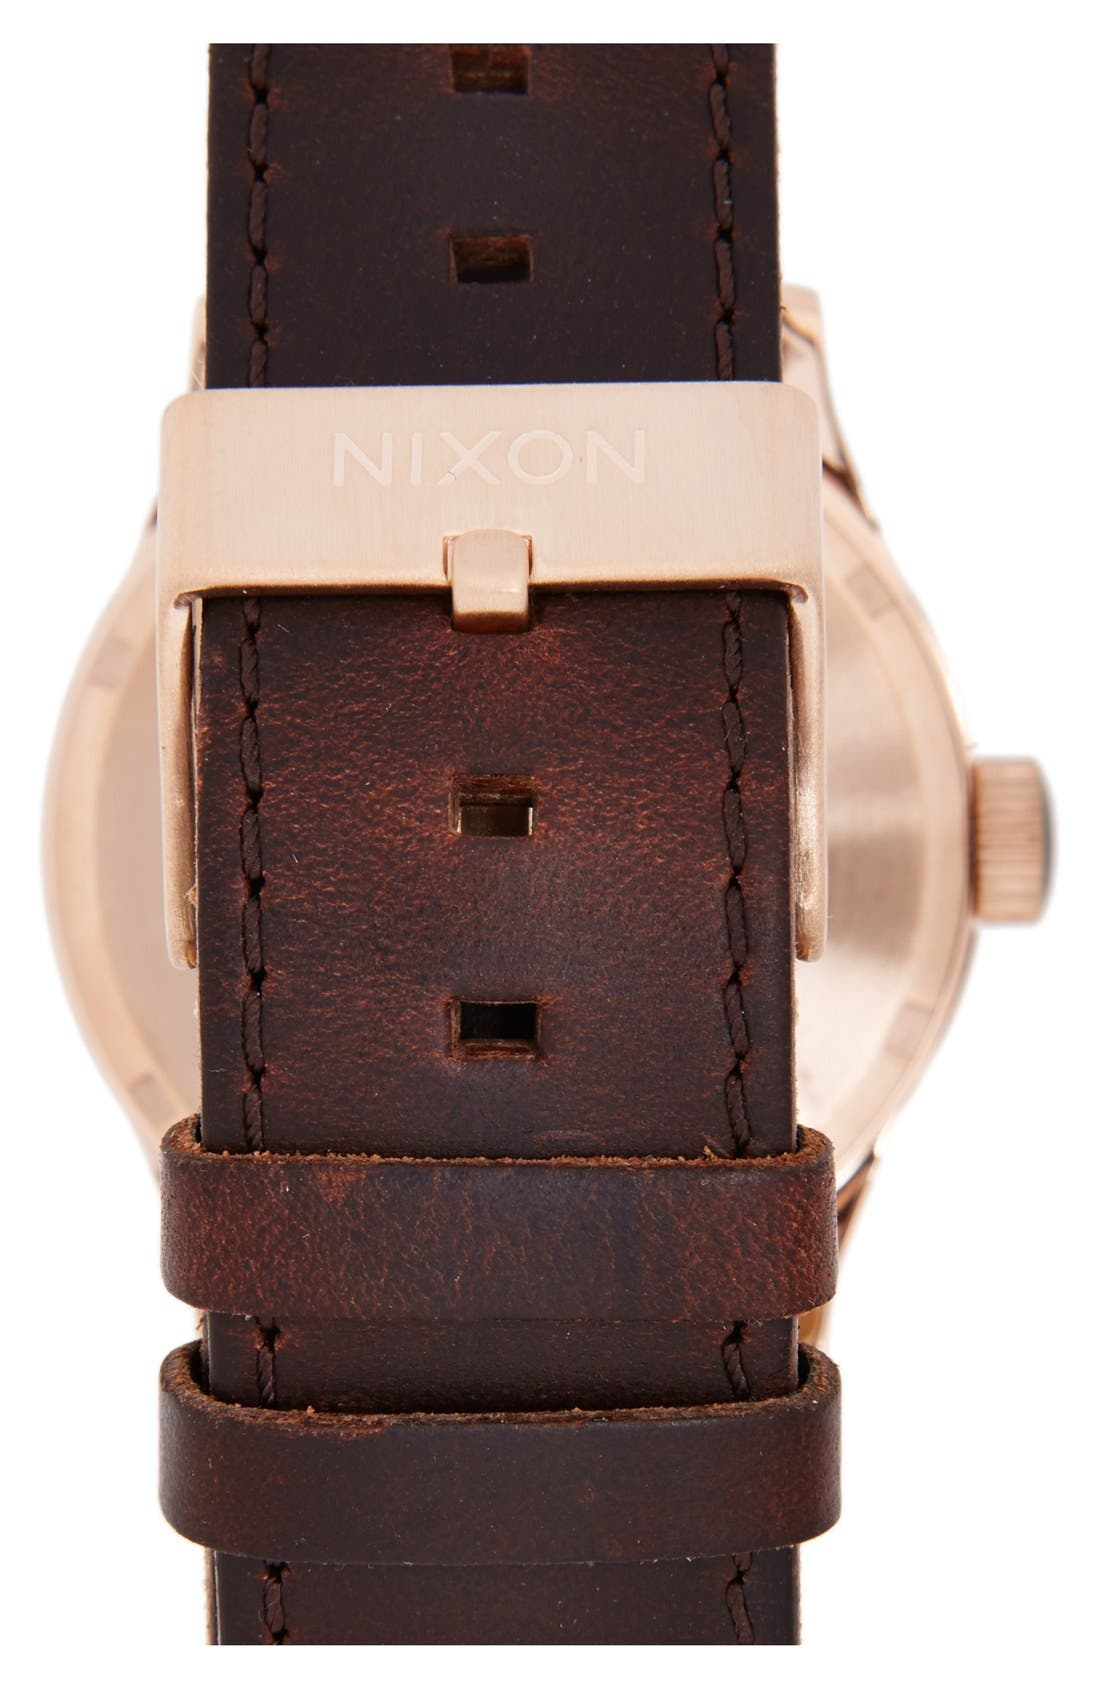 NIXON,                             'The Sentry' Leather Strap Watch, 42mm,                             Alternate thumbnail 5, color,                             BROWN/ ROSE GOLD/ GUNMETAL